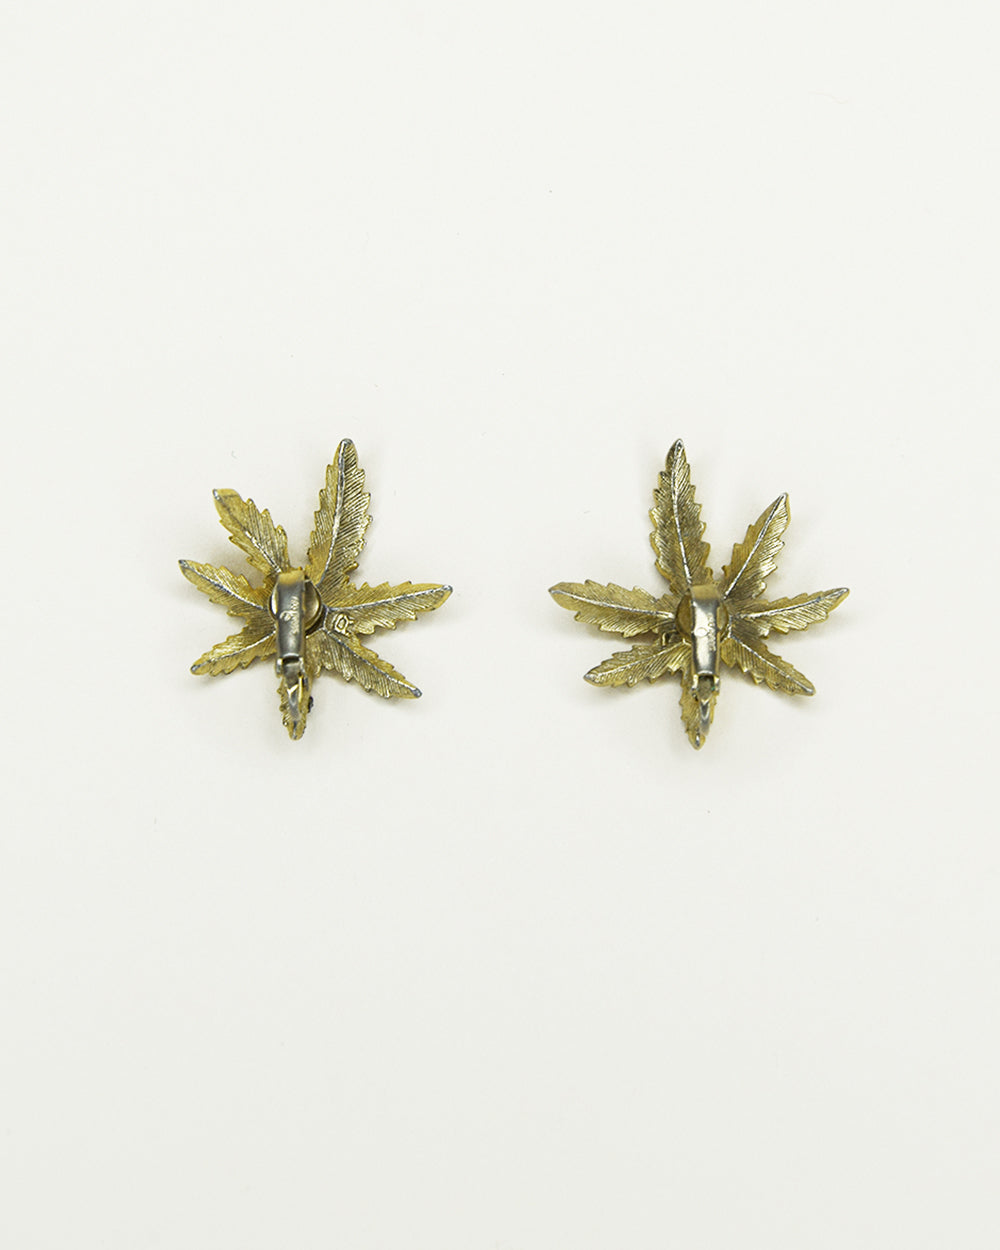 Vintage Palm Earrings